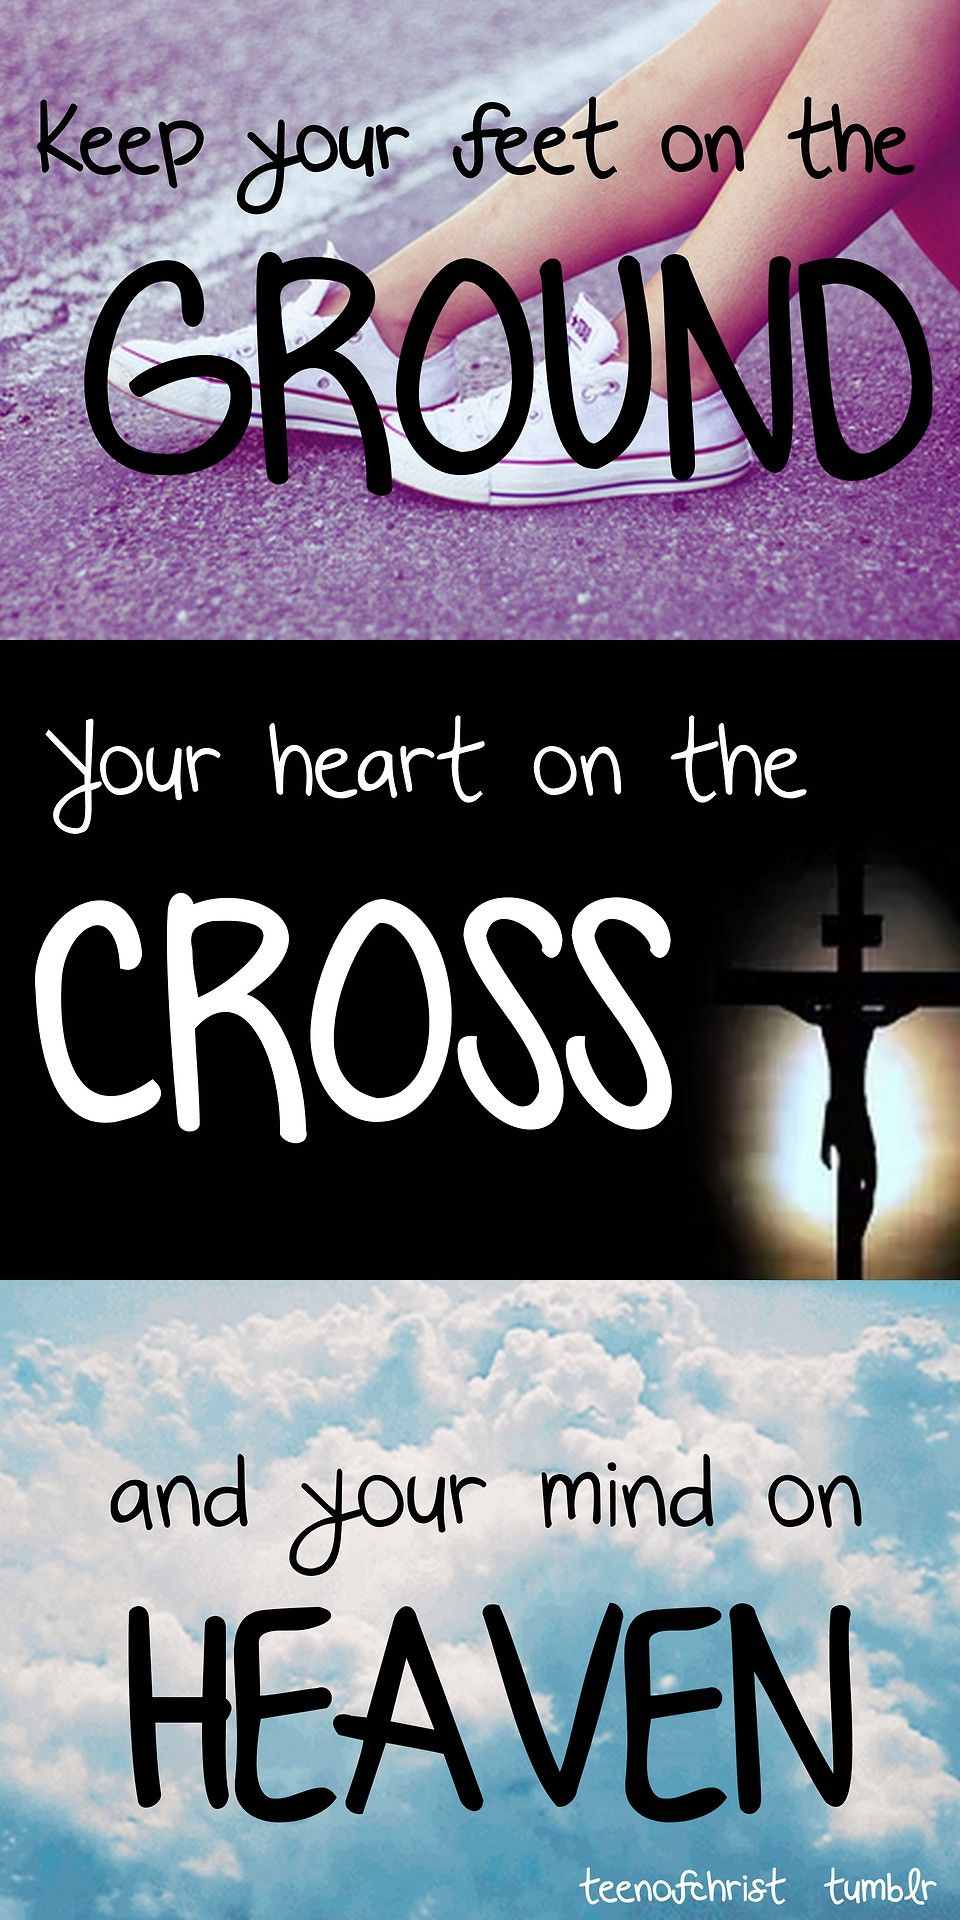 Keep you feet on the ground, your heart on the cross, and